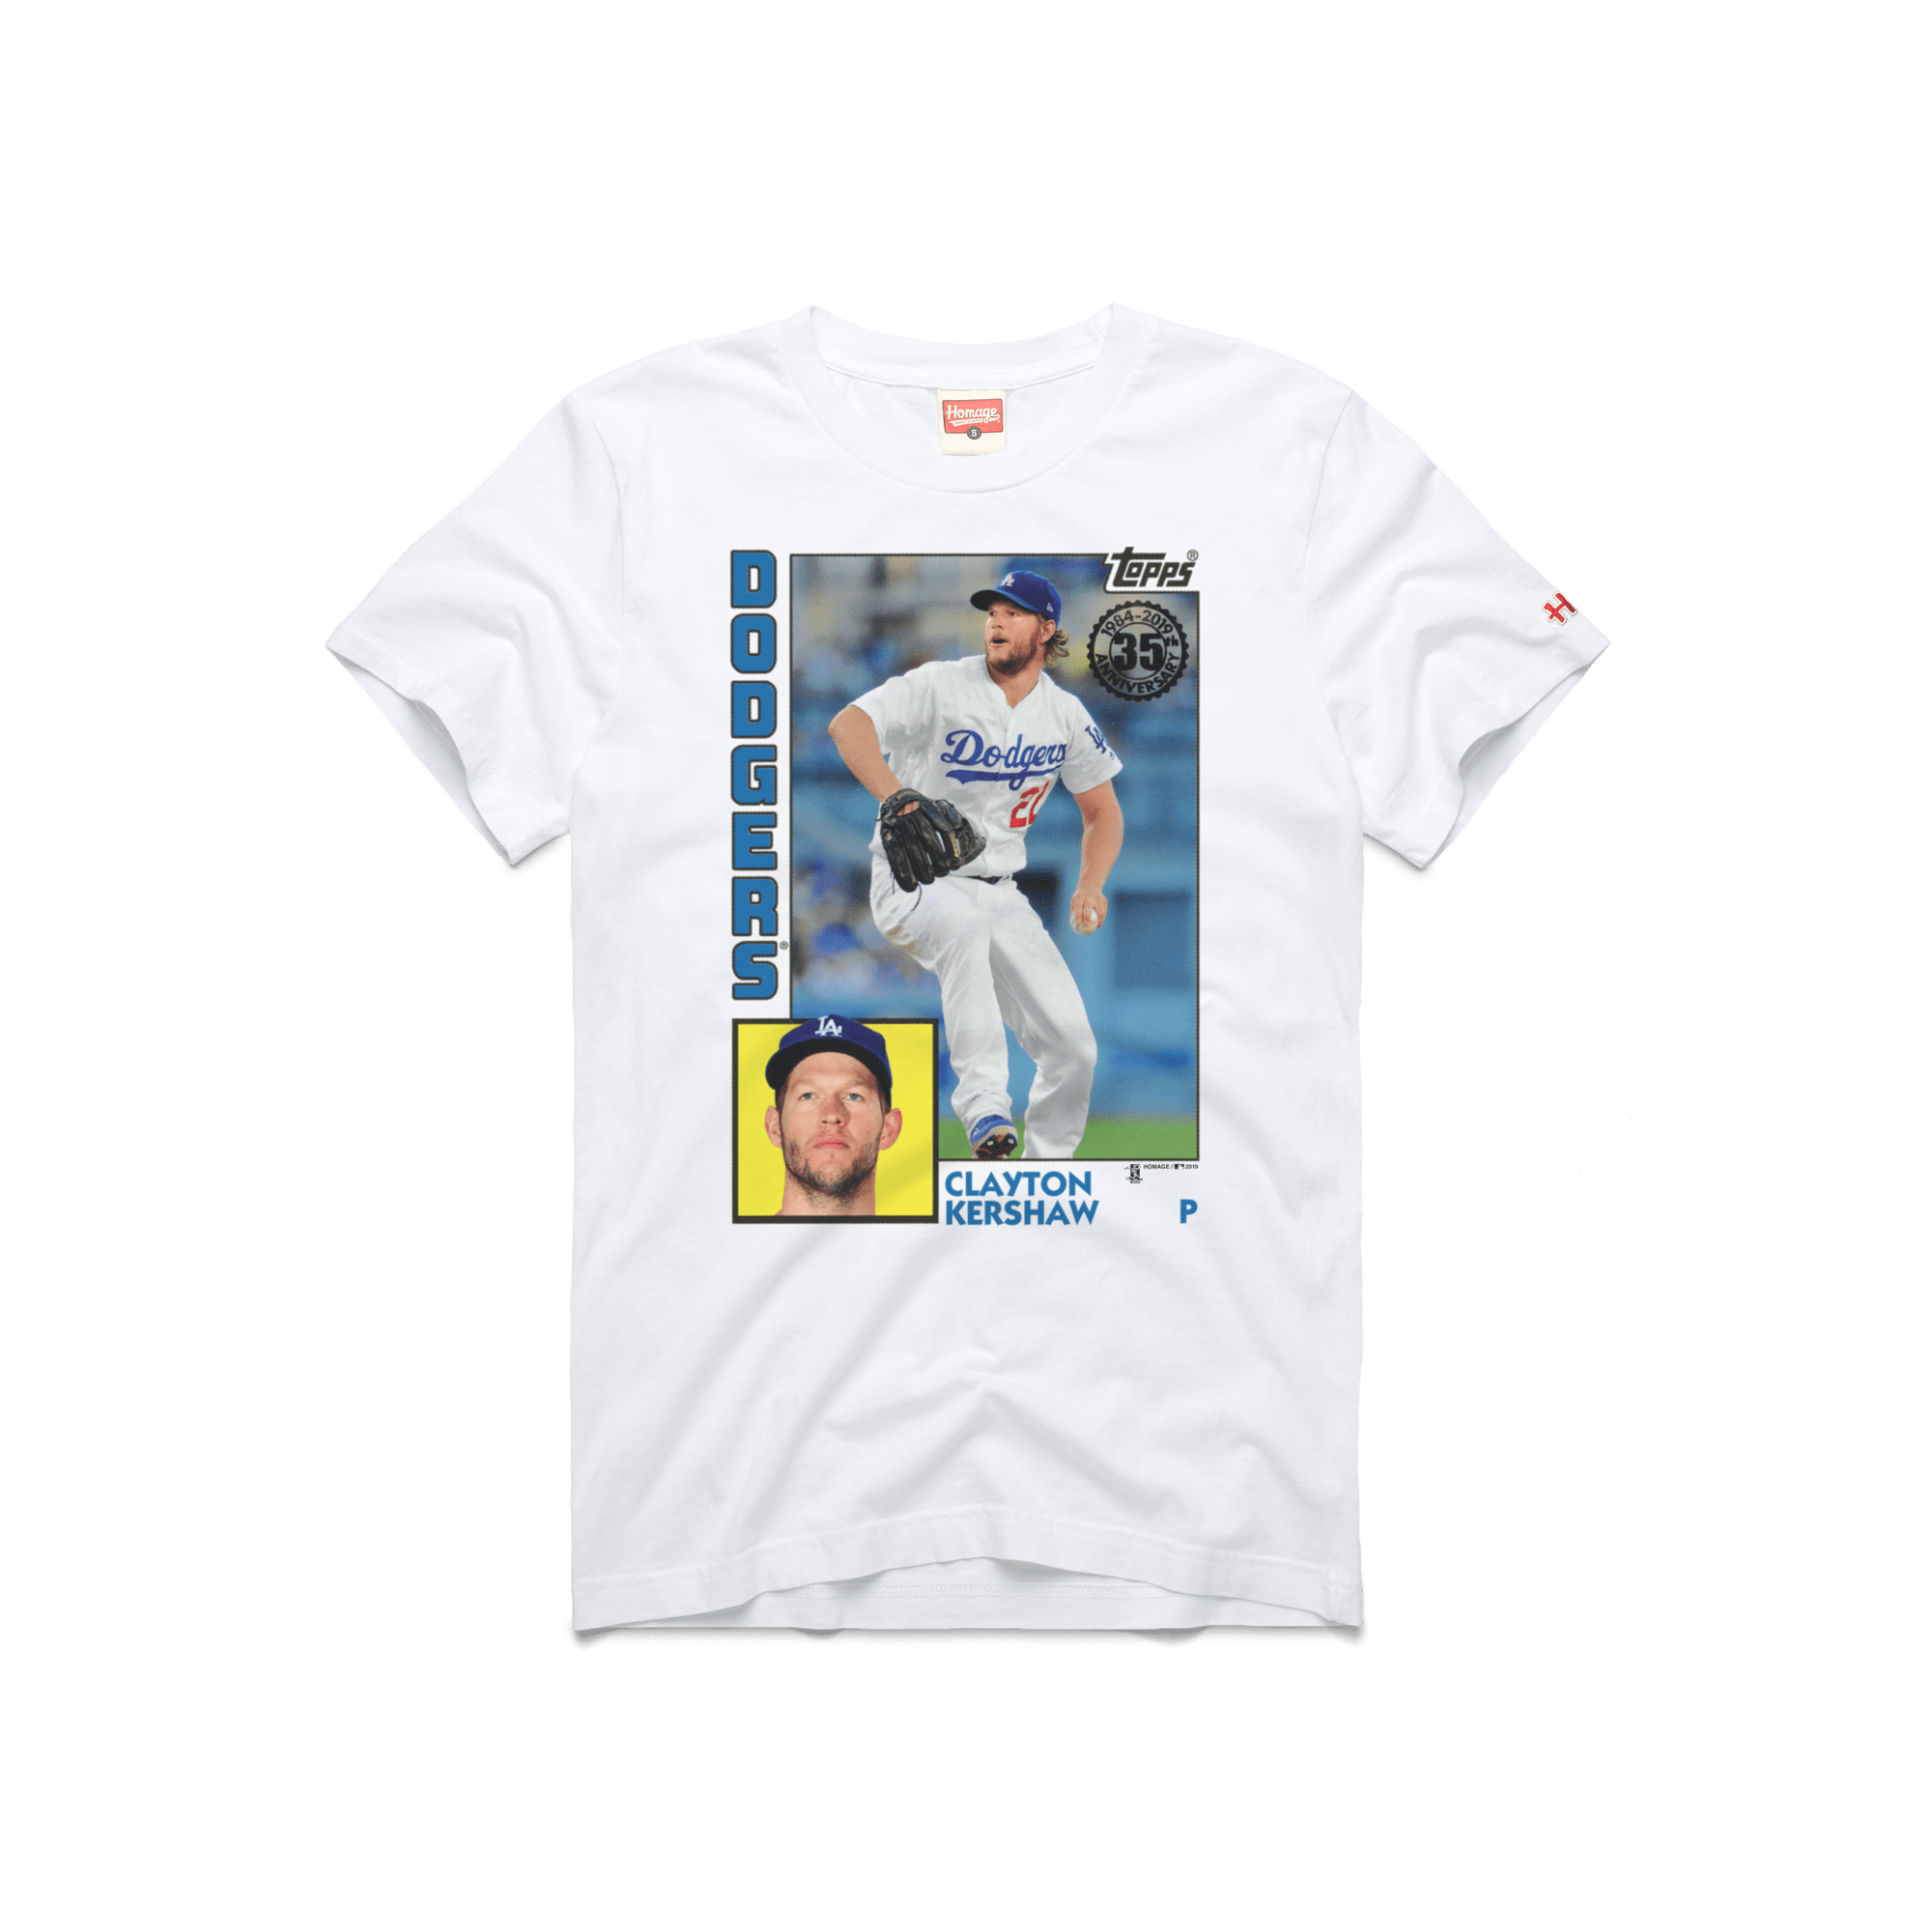 07db96c6 Retro Baseball Apparel MLB Players Stadiums And More – HOMAGE